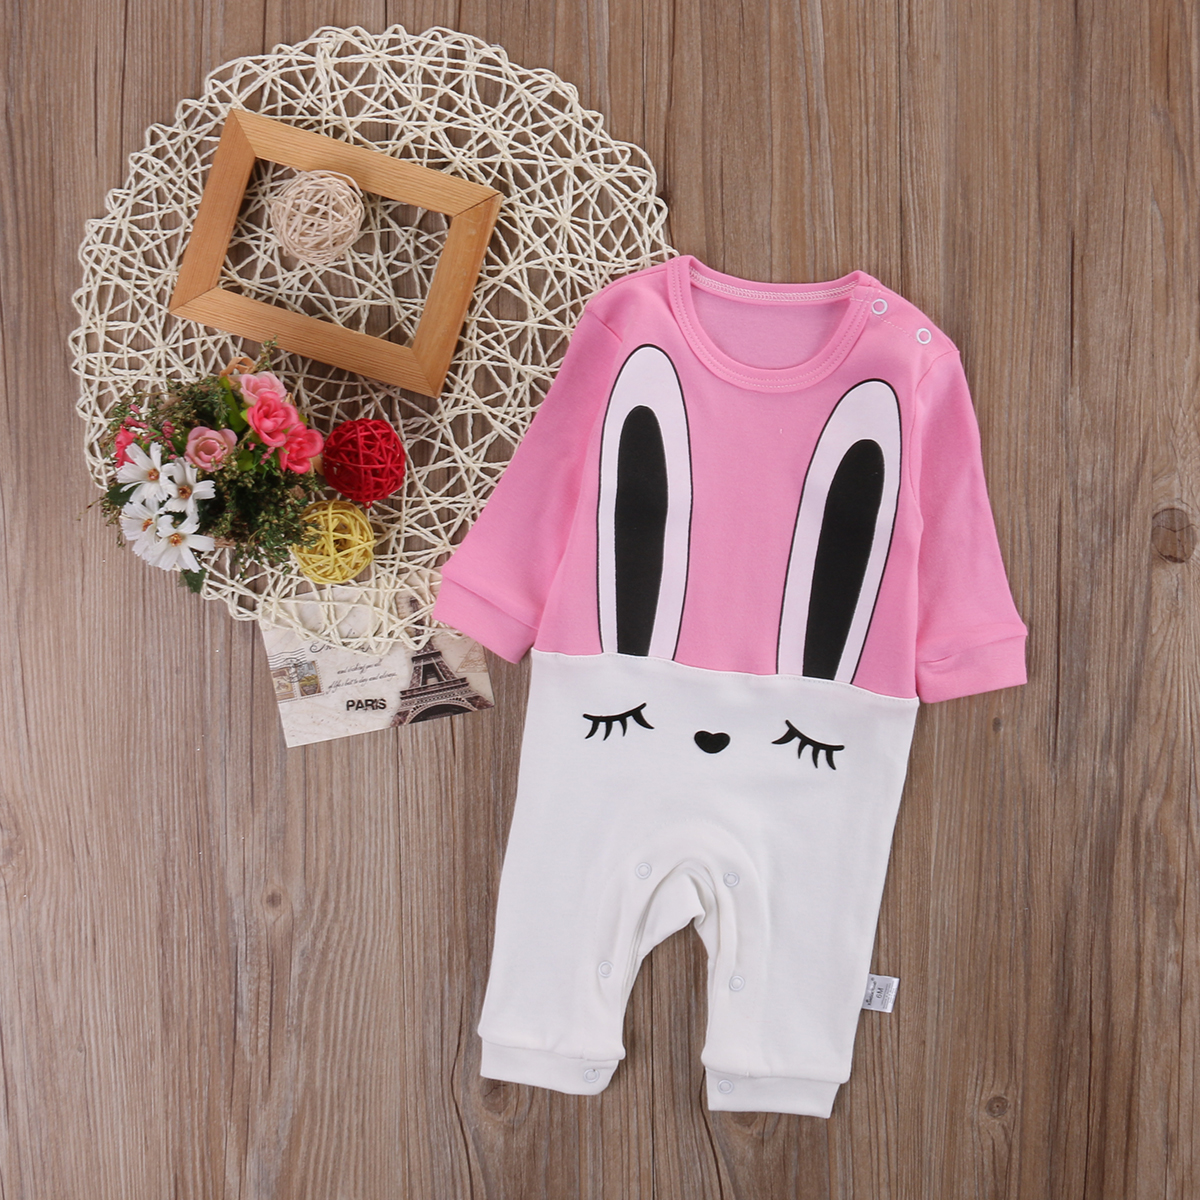 Infant Baby Girls long sleeve Romper Outfits Summer Sunsuit 3-36M